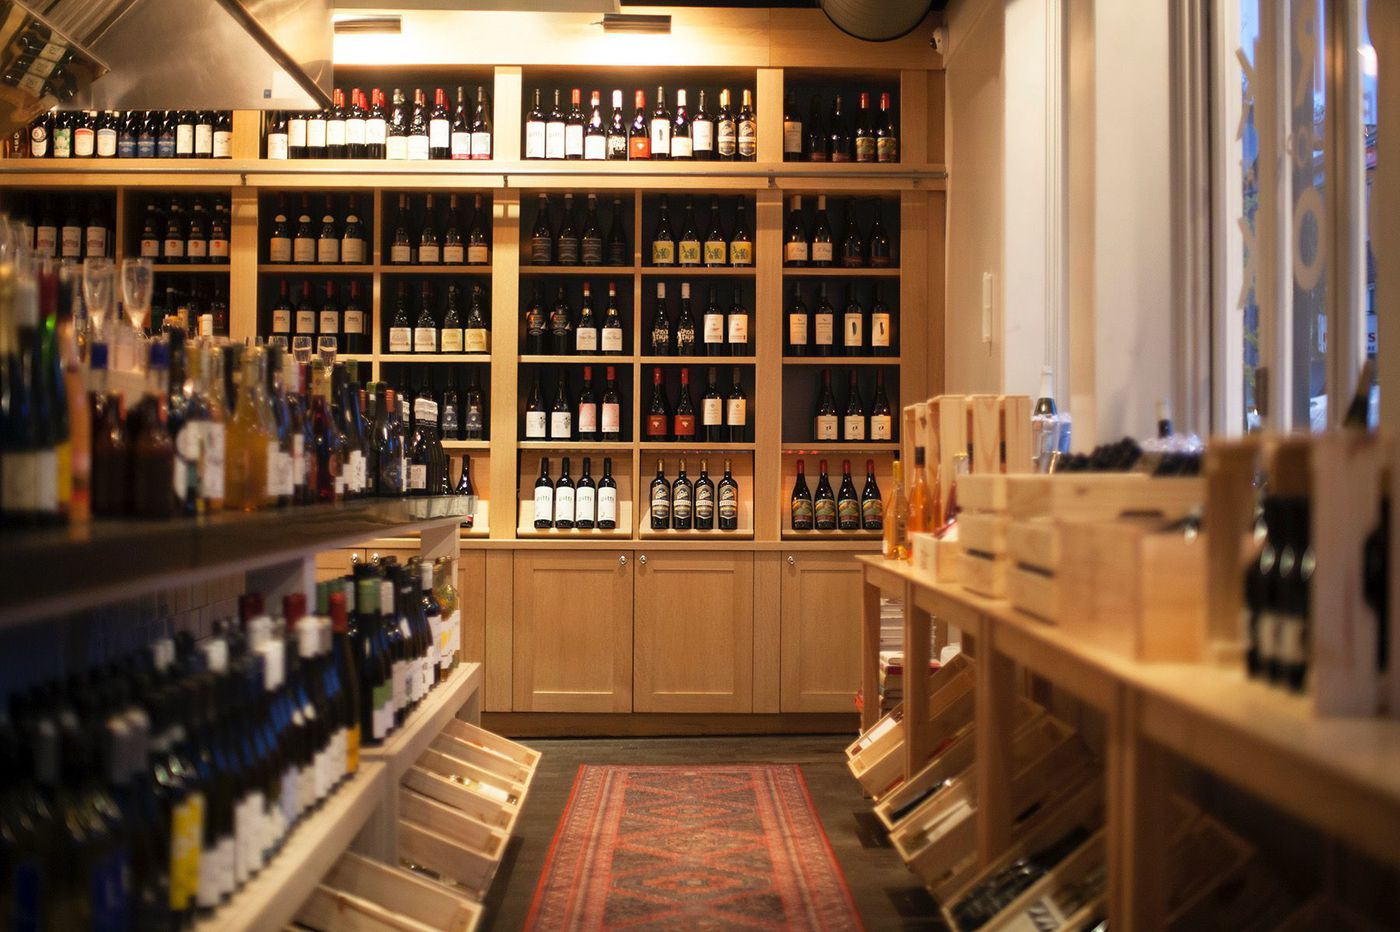 Audrey Claire Cook is now Cork, a wine shop selling 100-plus bottles